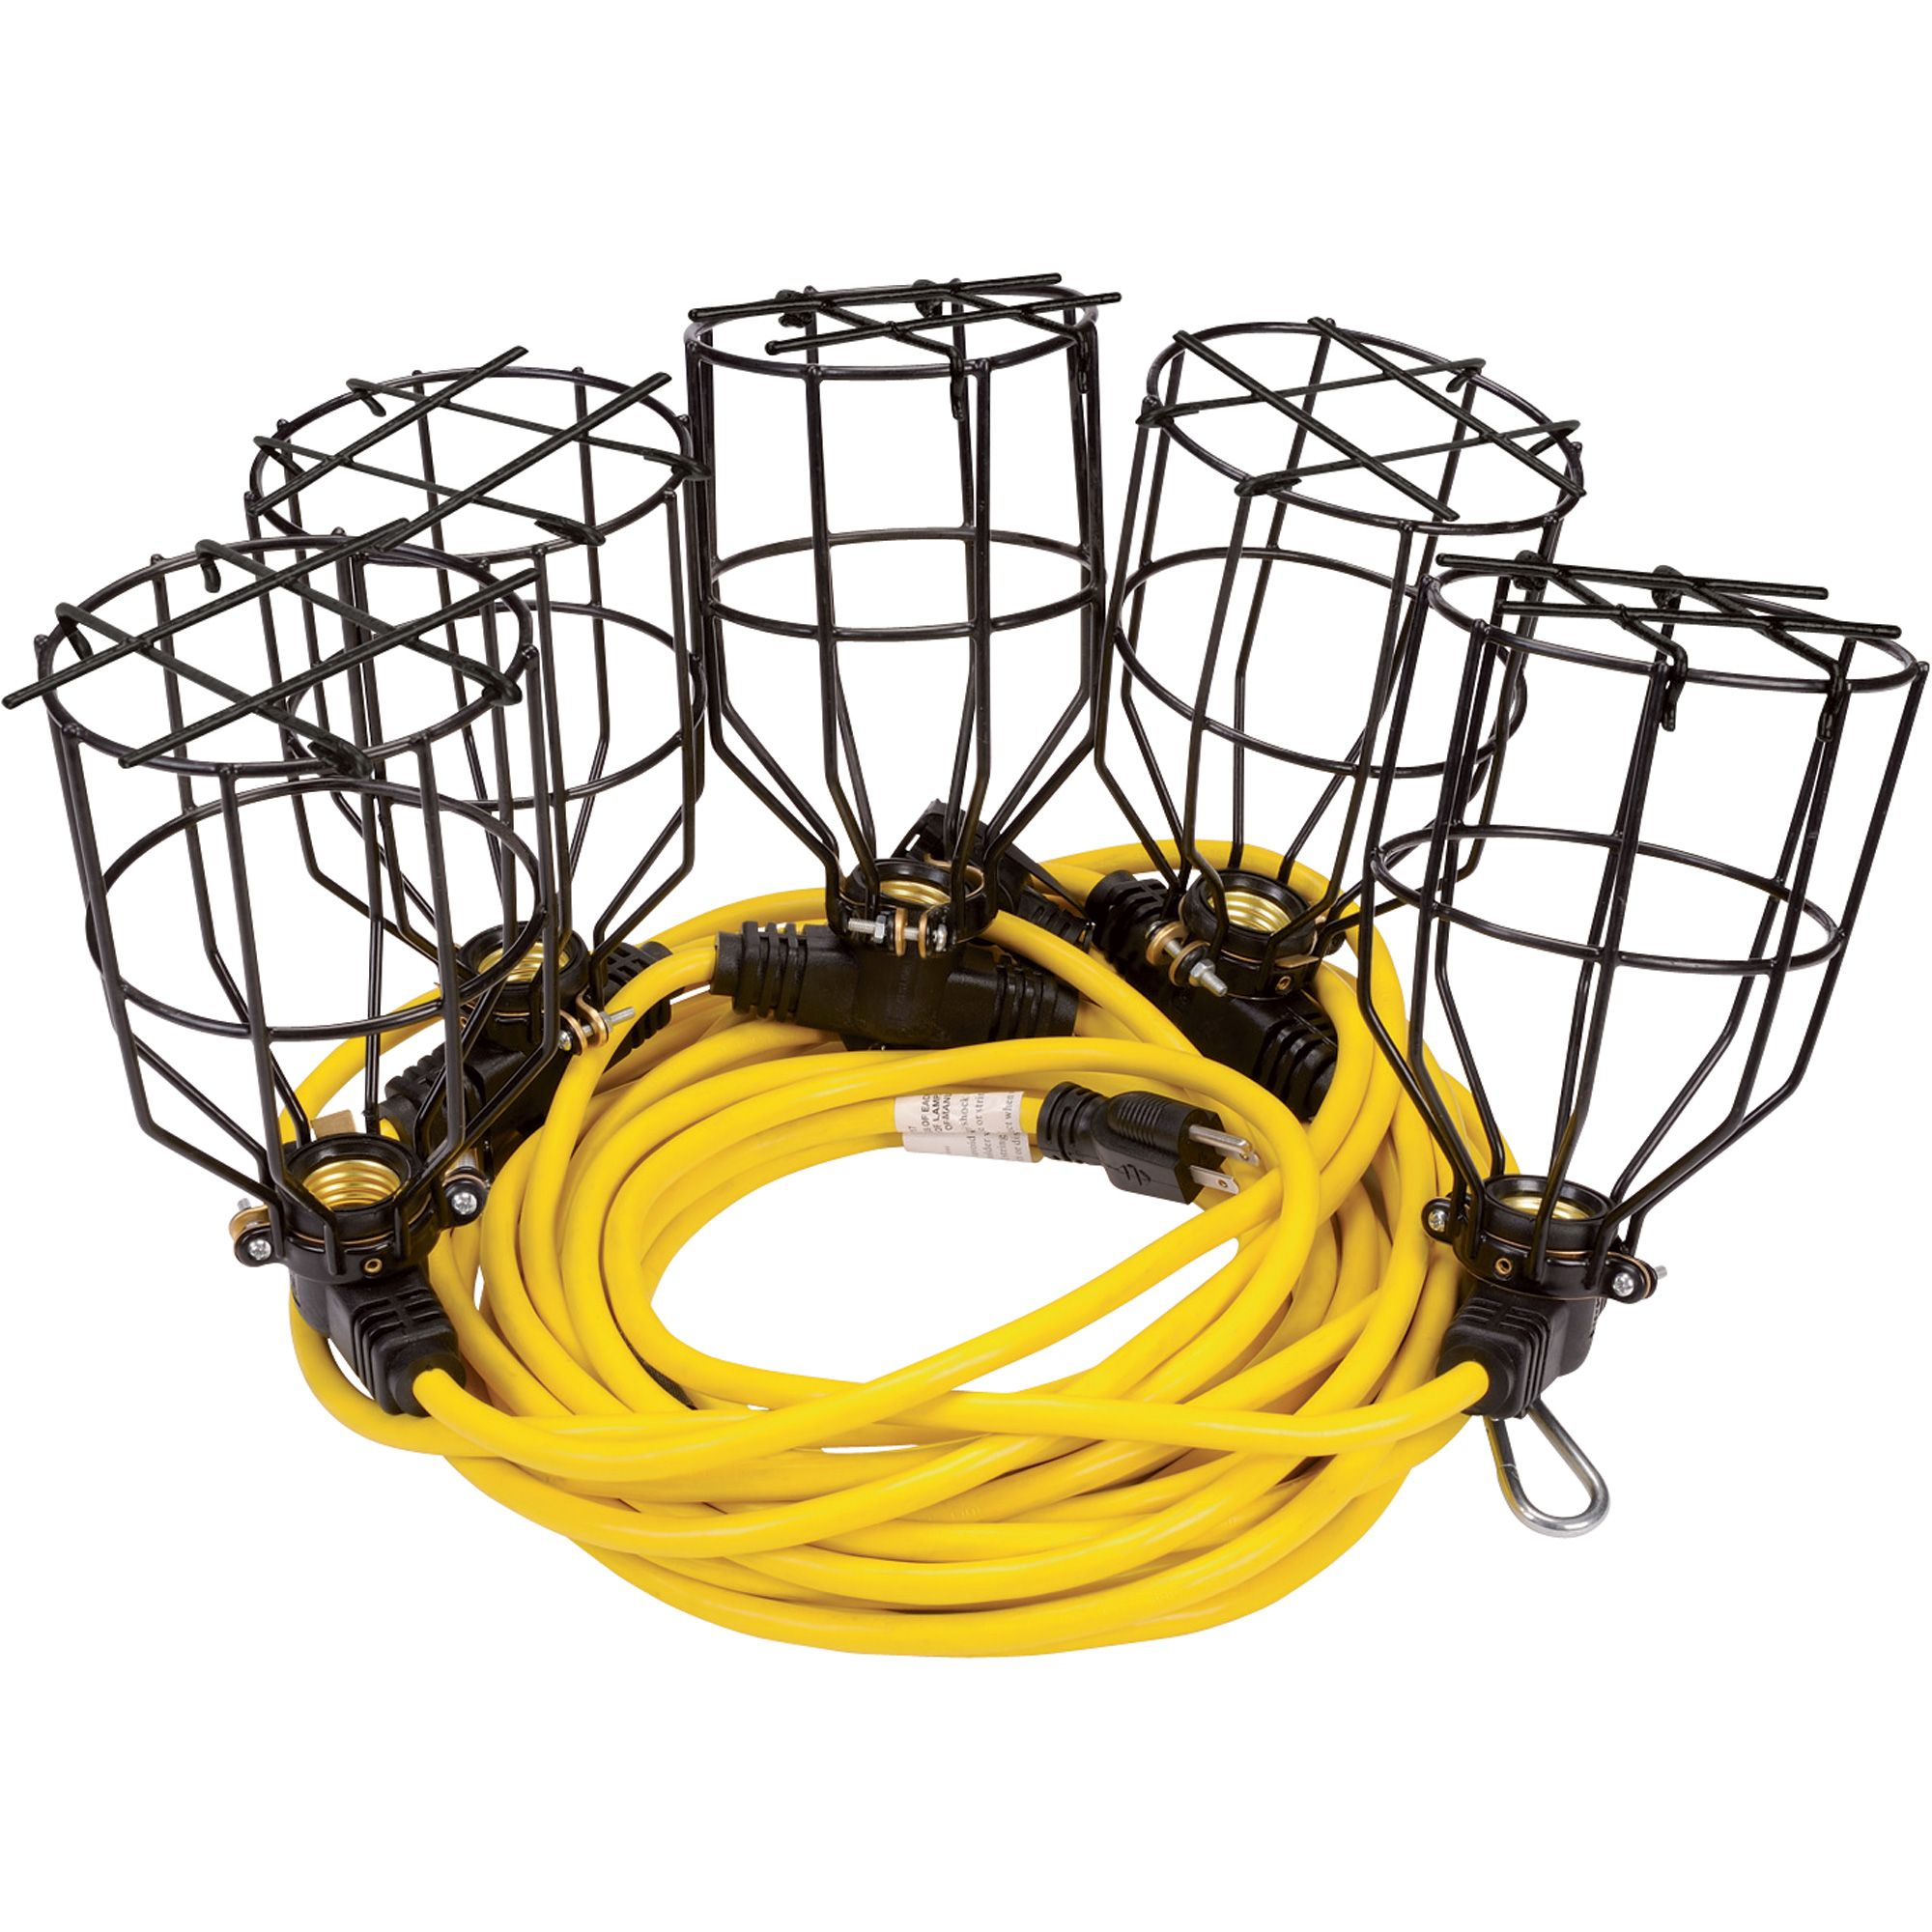 Construction Light String Alluring Construction Lights Fun For Boys Construction Room  Construction